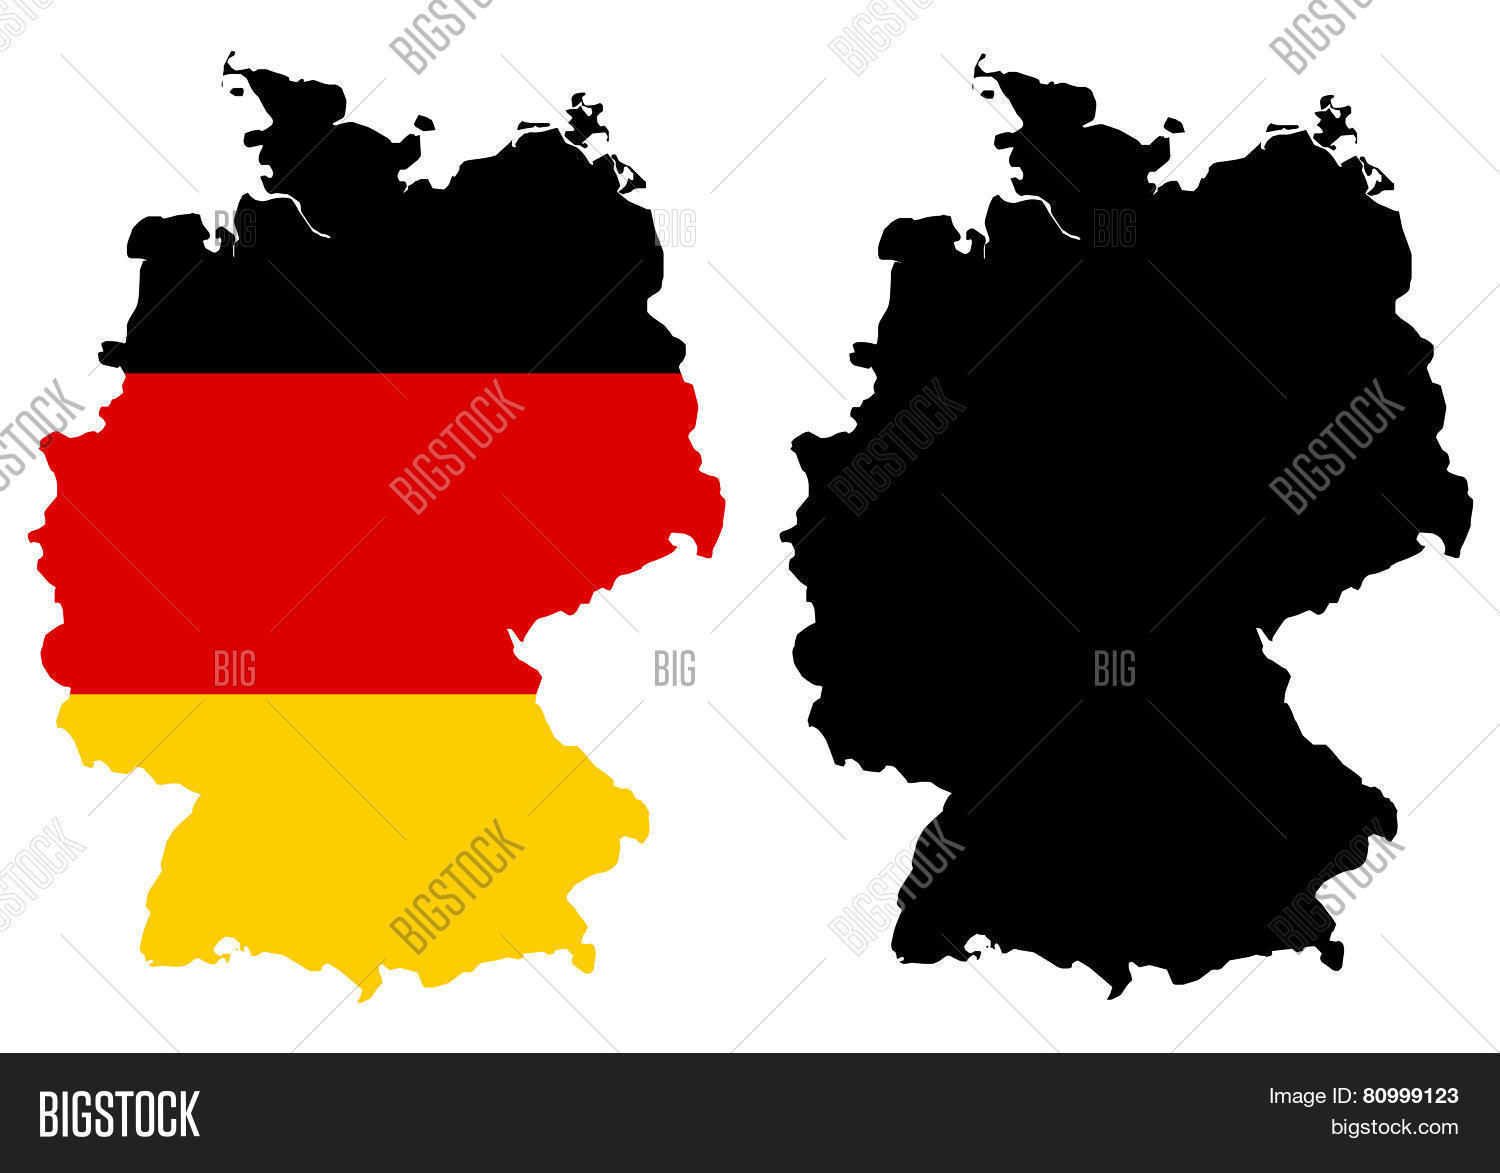 Map Flag Germany Image & Photo (Free Trial) | Bigstock Germany Map And Flag on south sudan flag and map, england flag and map, slovakia flag and map, mozambique flag and map, british flag and map, iran flag and map, kuwait flag and map, france flag and map, arizona flag and map, malaysia flag and map, israel flag and map, syria flag and map, belize flag and map, portugal flag and map, zambia flag and map, chad flag and map, china flag and map, ireland flag and map, lebanon flag and map, ukraine flag and map,